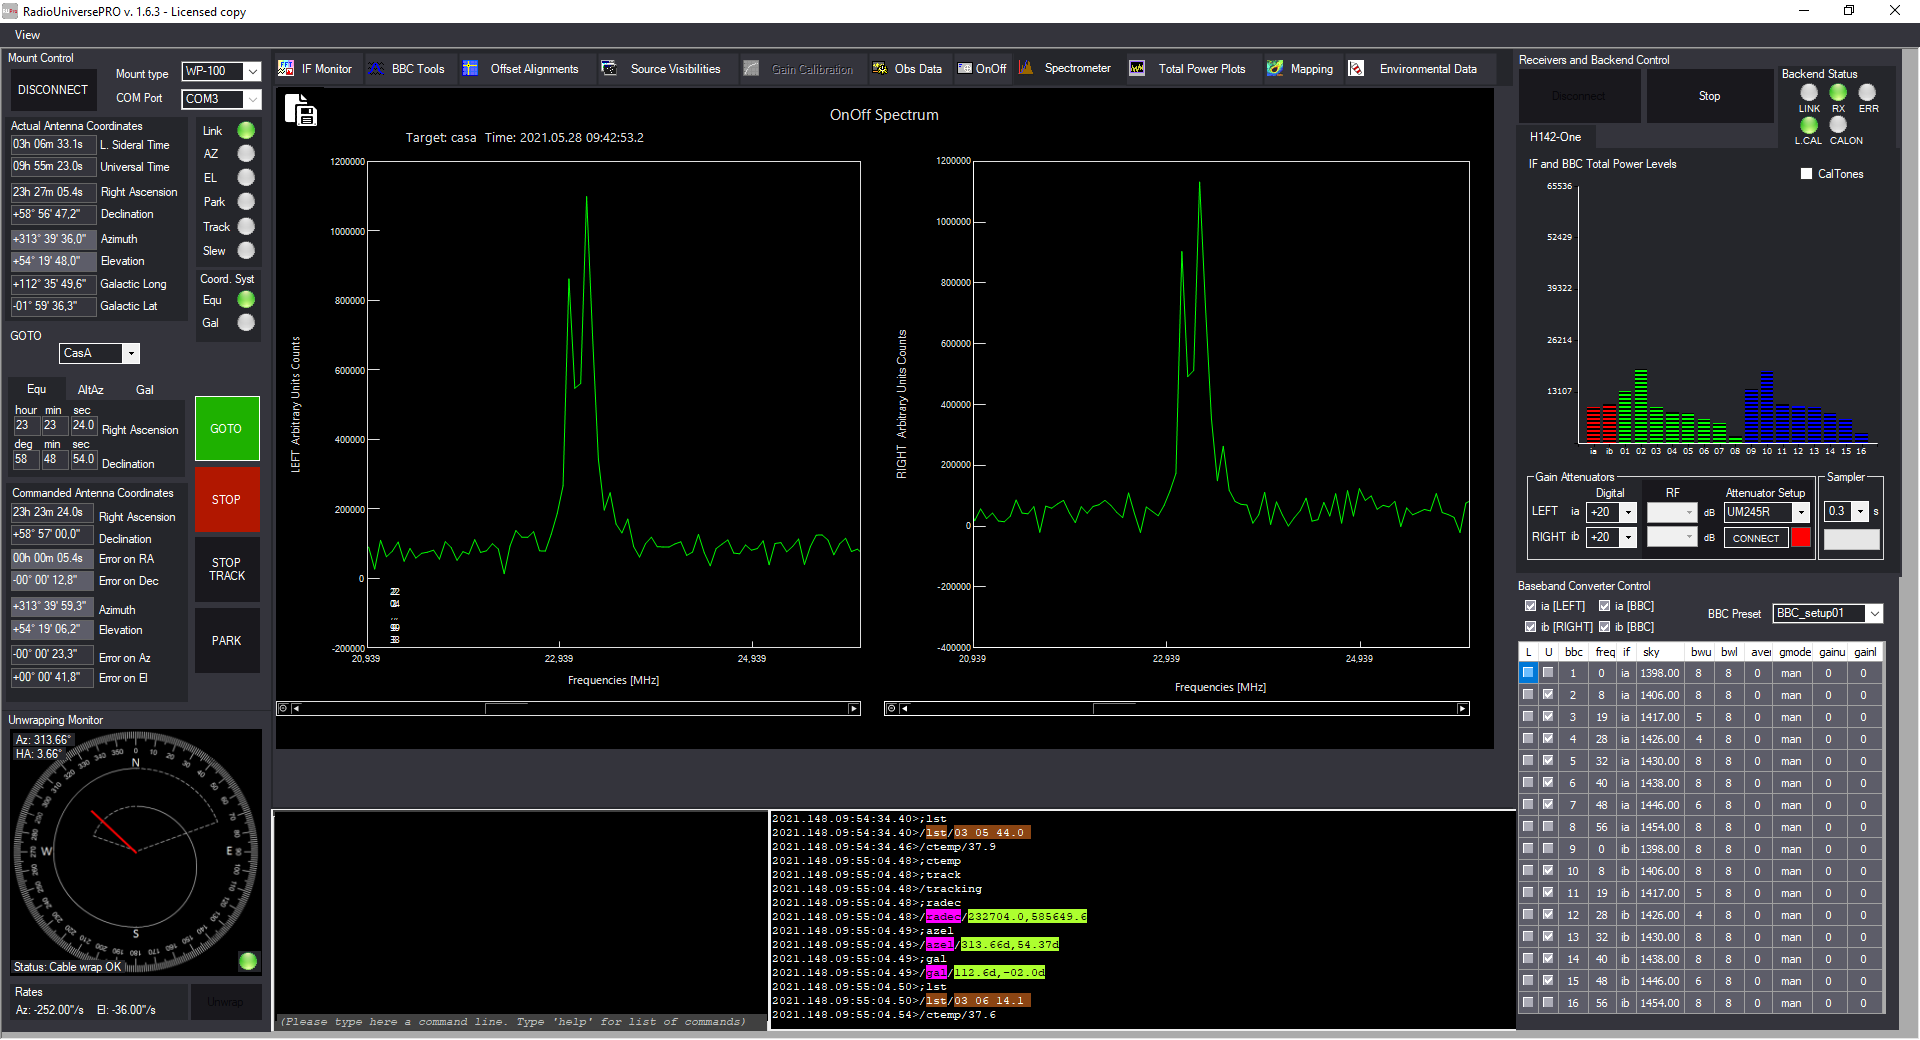 Cassiopea A recorded with SPIDER 300A radio telescope: calibrated spectrum of Cassiopea A with neutral hydrogen line at 1420 MHz.